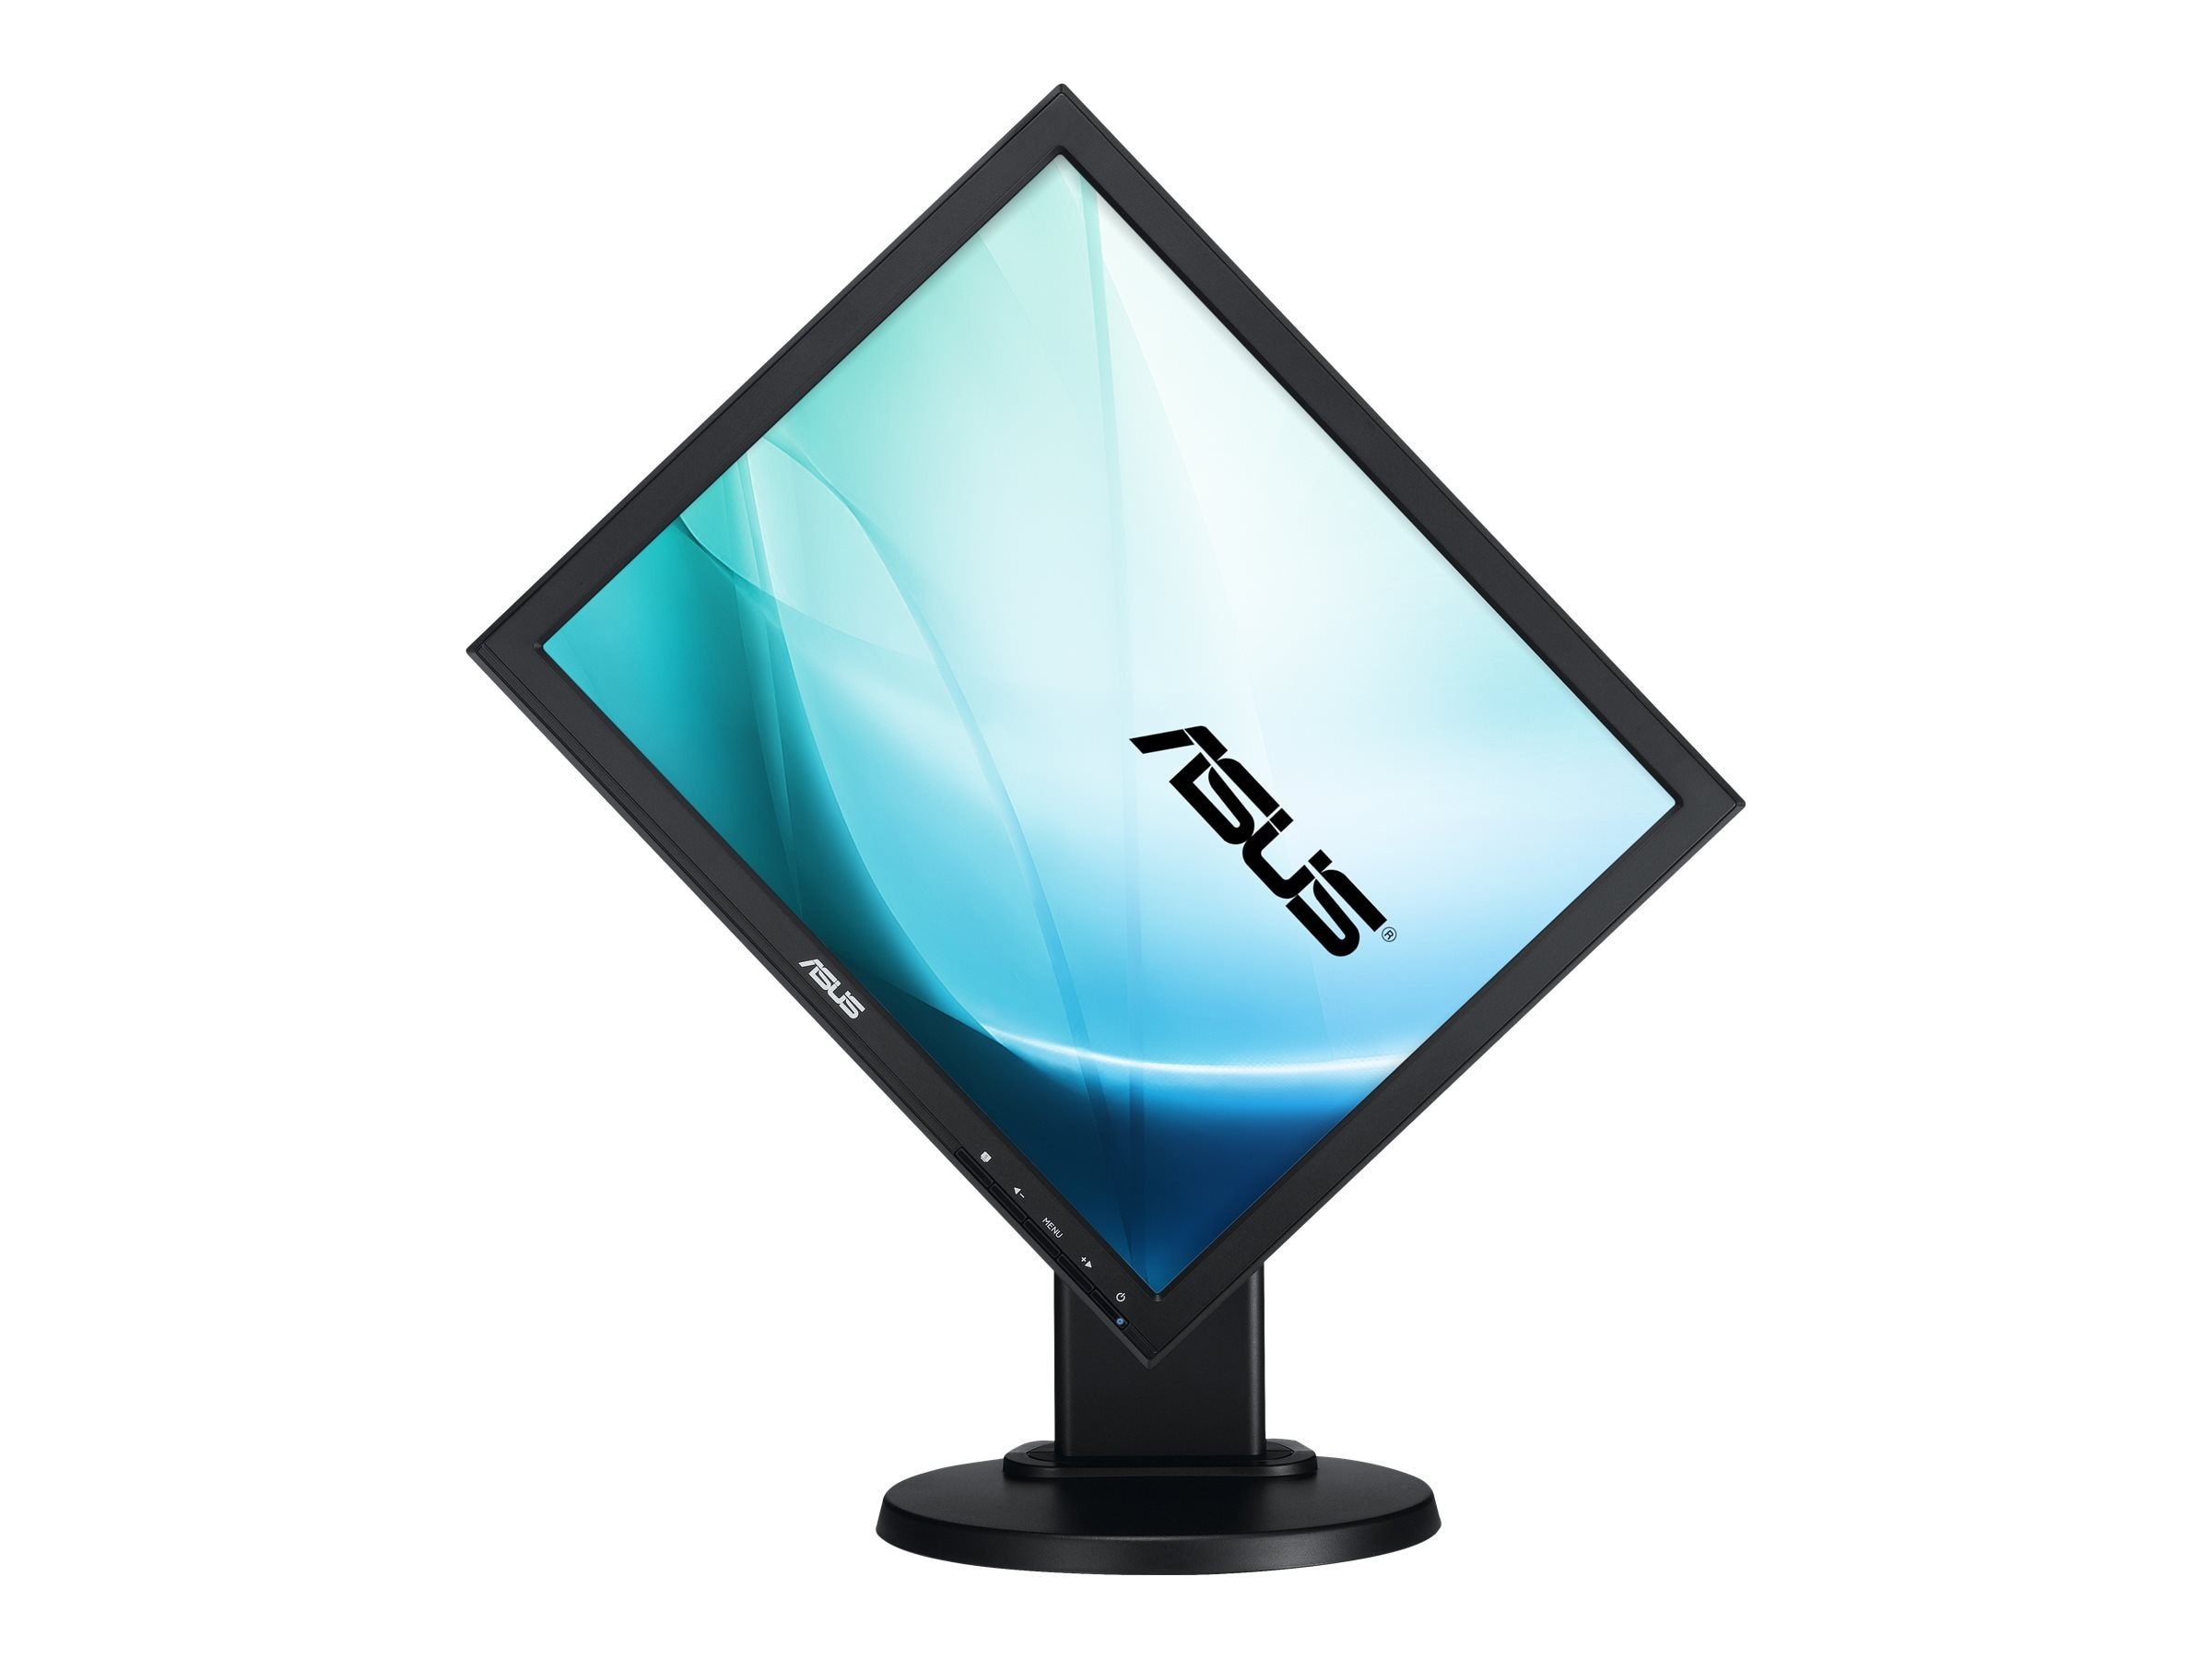 Asus 19 VB199T-P LED-LCD Monitor, Black, VB199T-P, 17824292, Monitors - LED-LCD